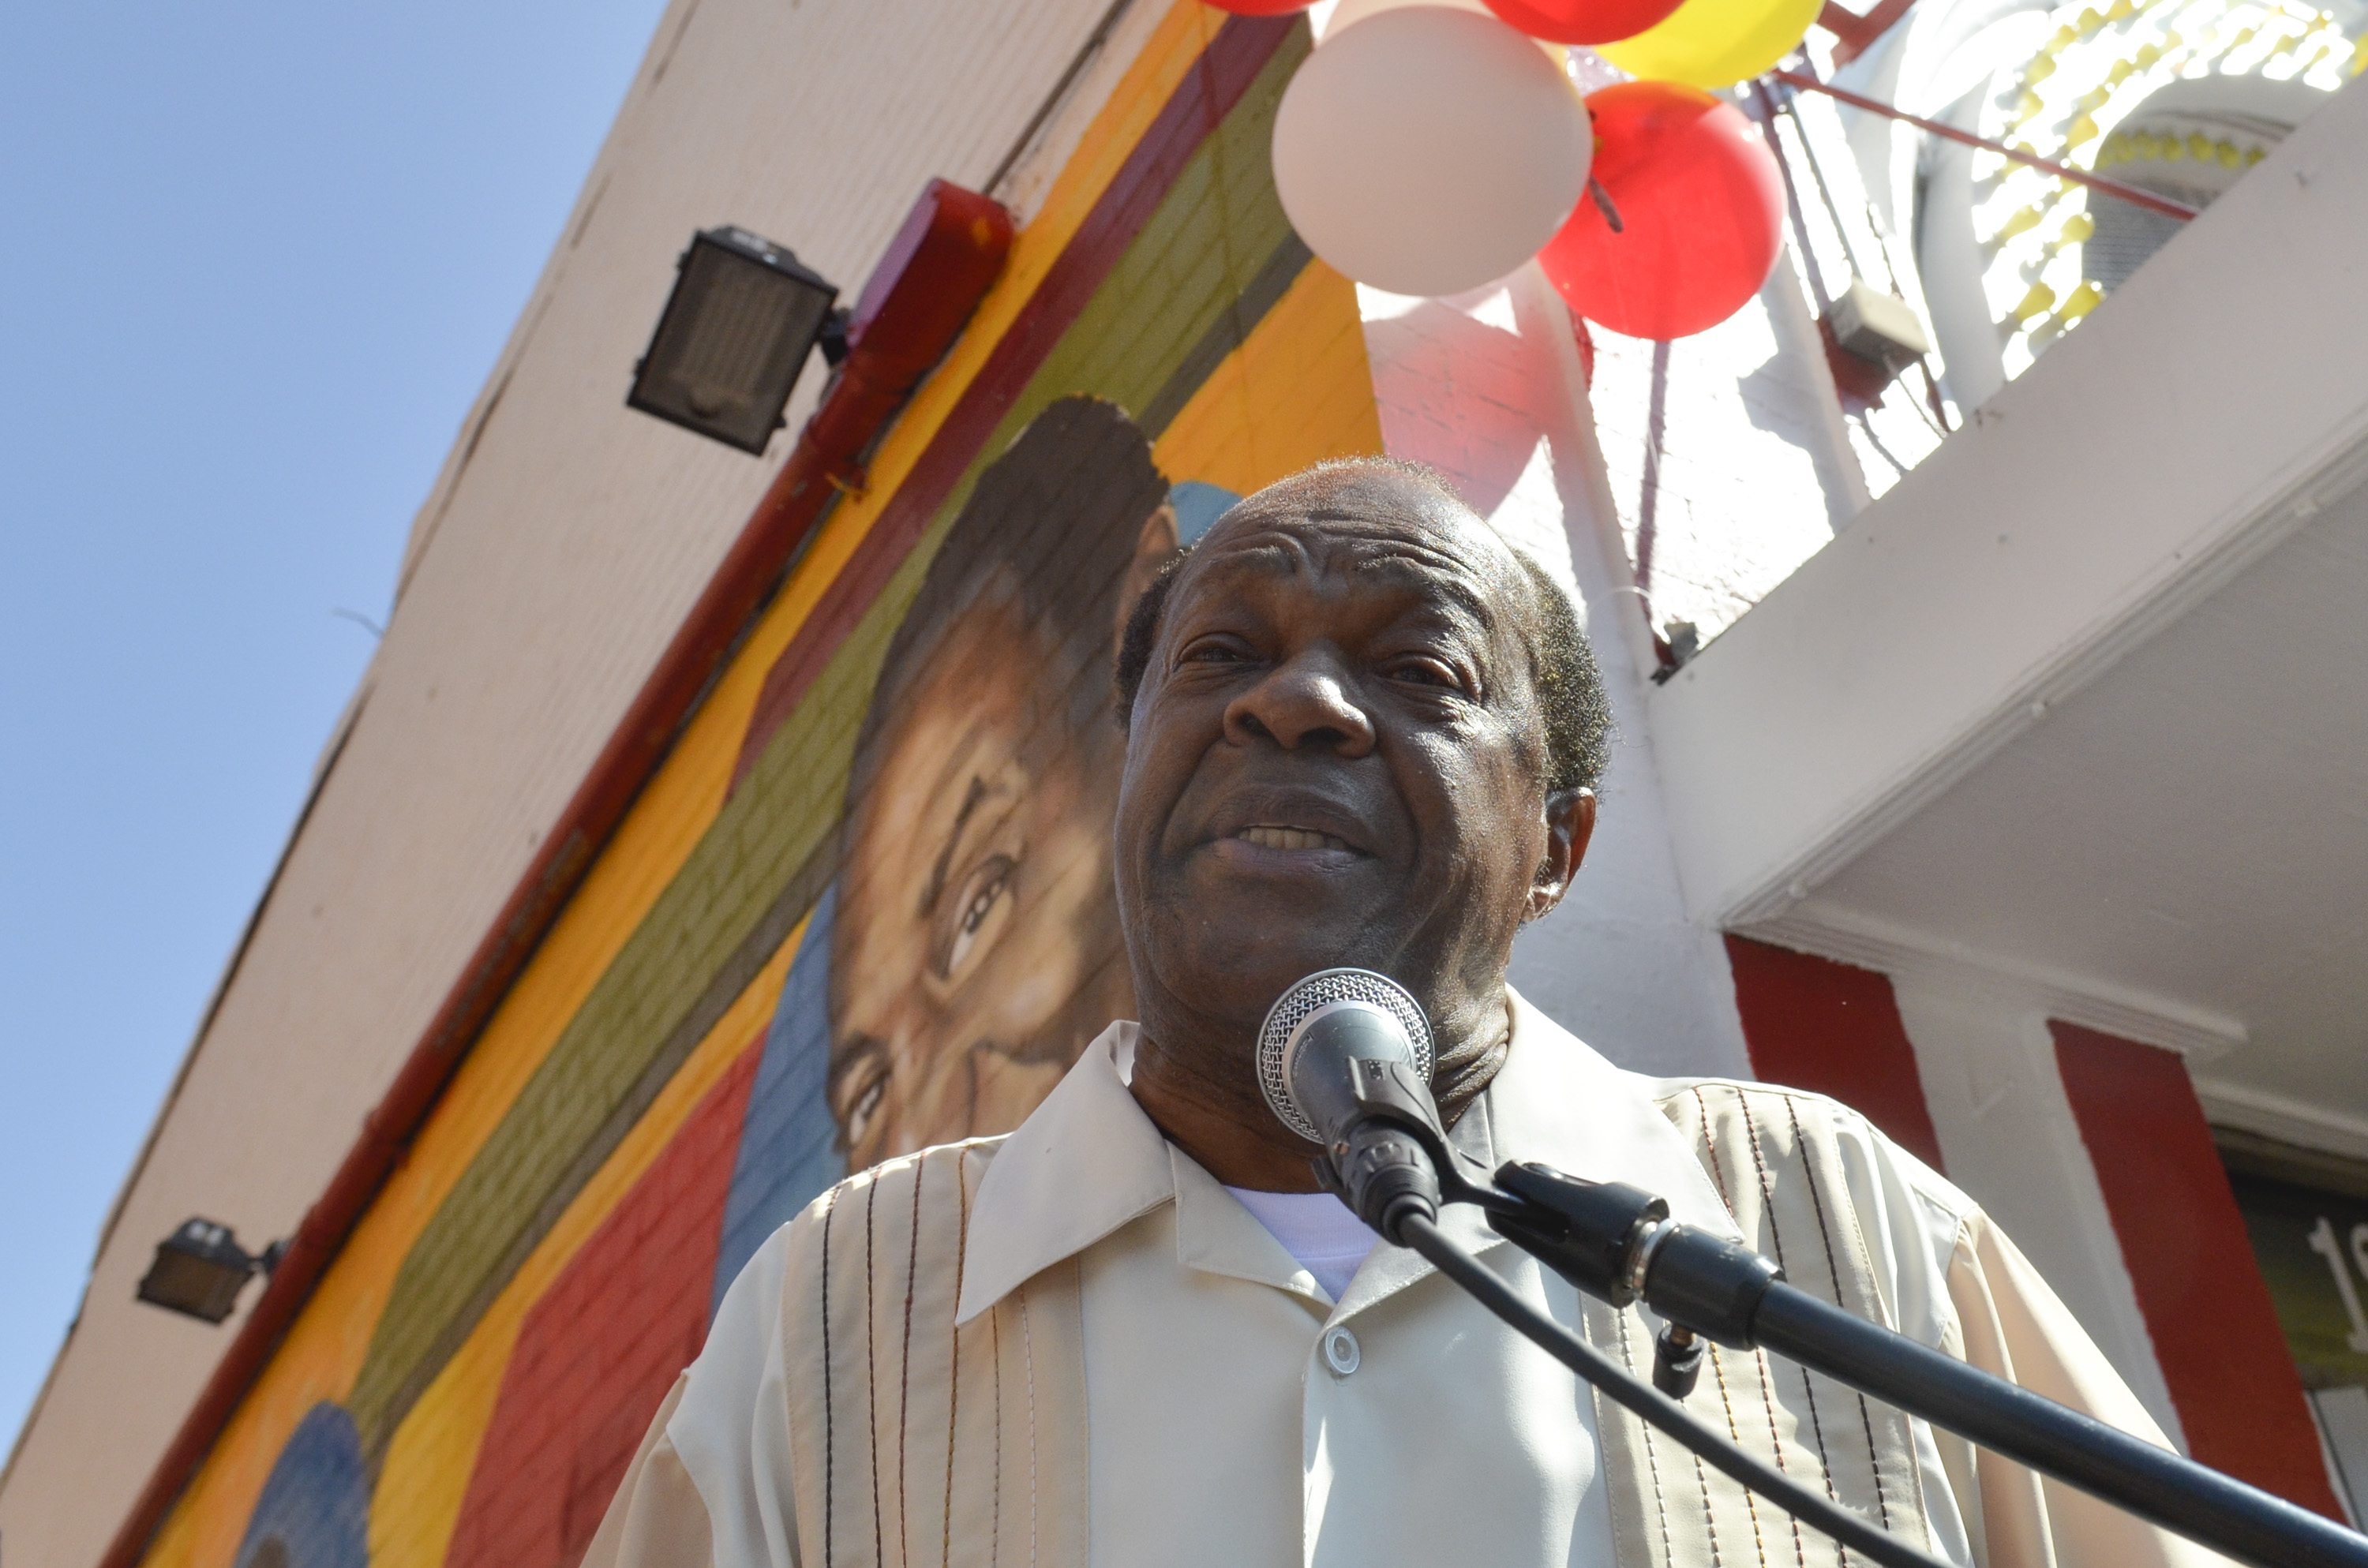 Marion Barry speaks during the 55th Anniversary of Ben's Chili Bowl on August 22, 2013 in Washington, DC.